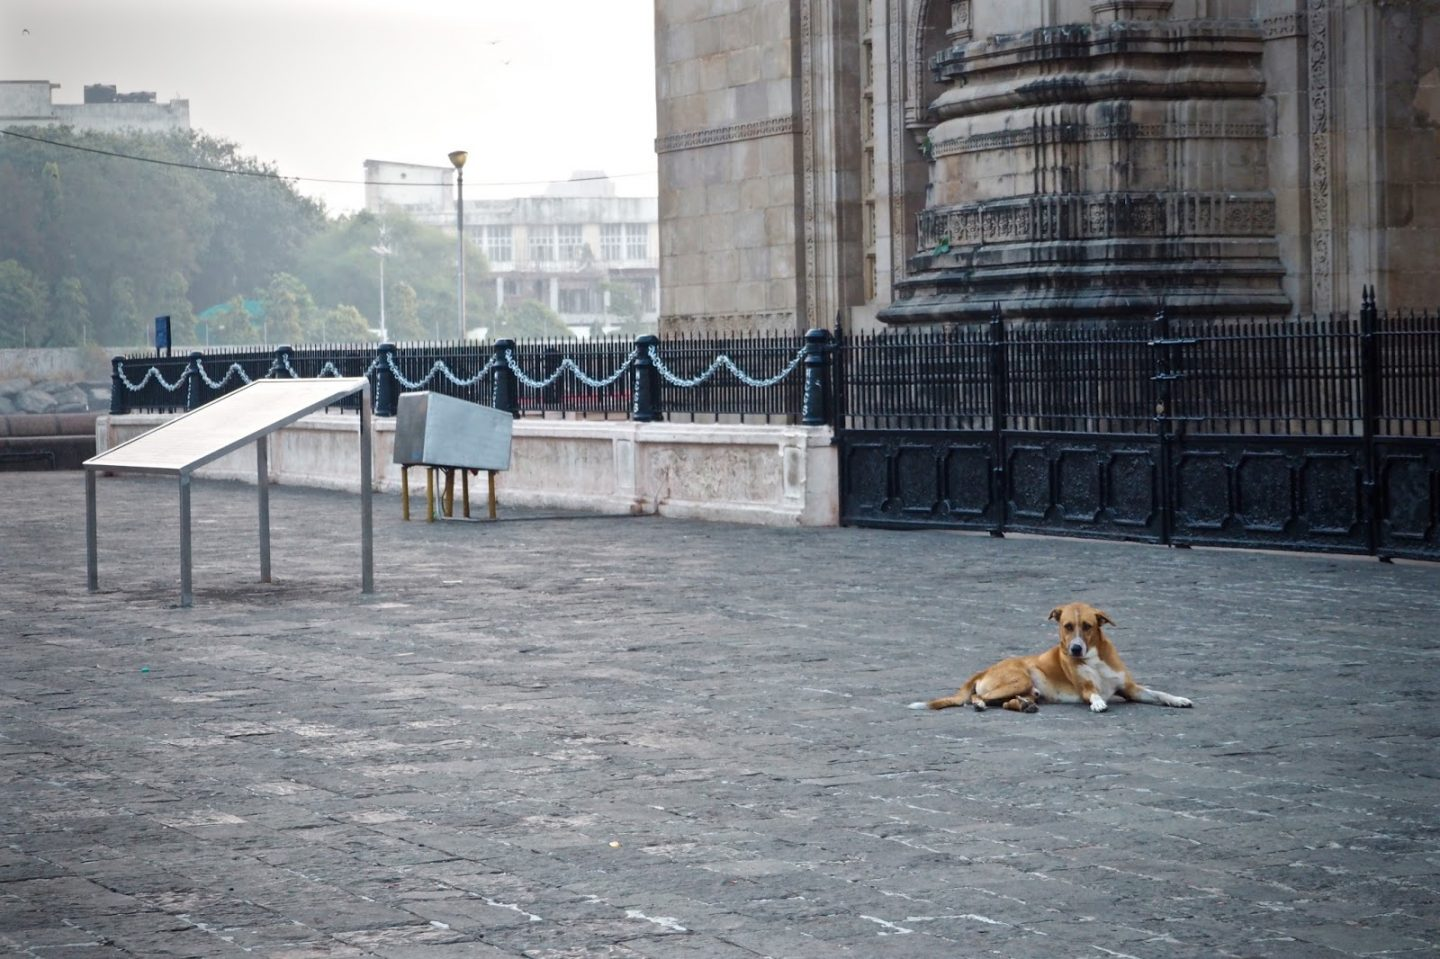 Dog guarding the Gateway of india